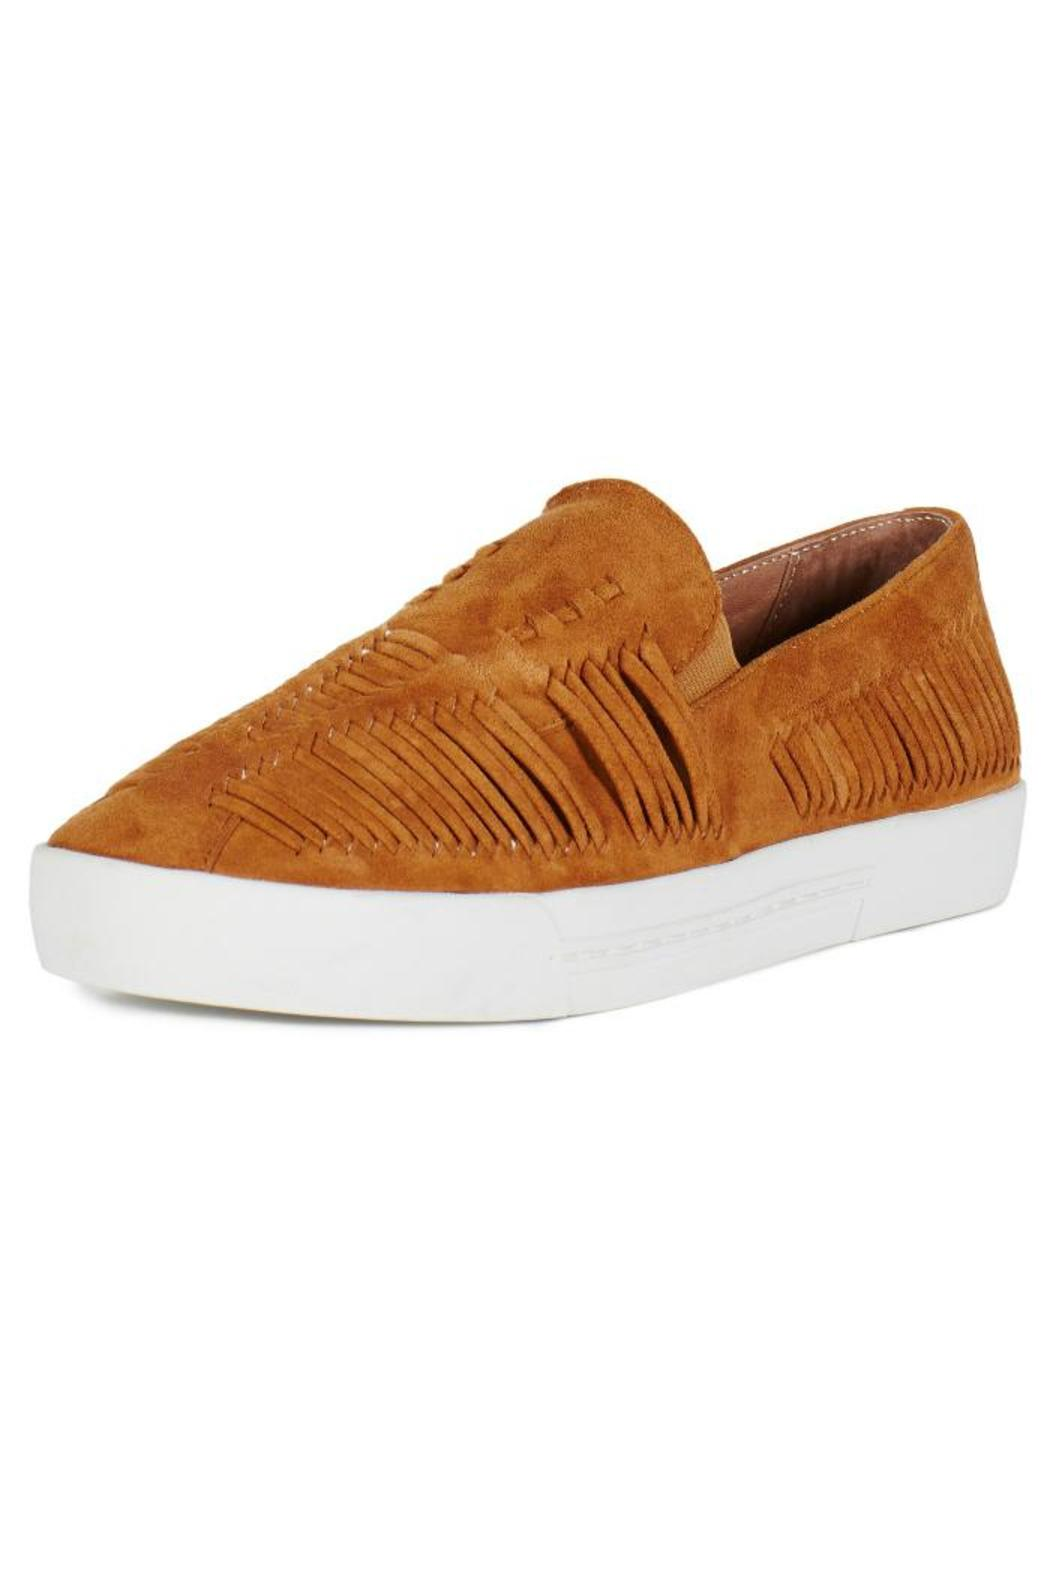 Joie Huxley Whiskey Sneaker - Front Cropped Image